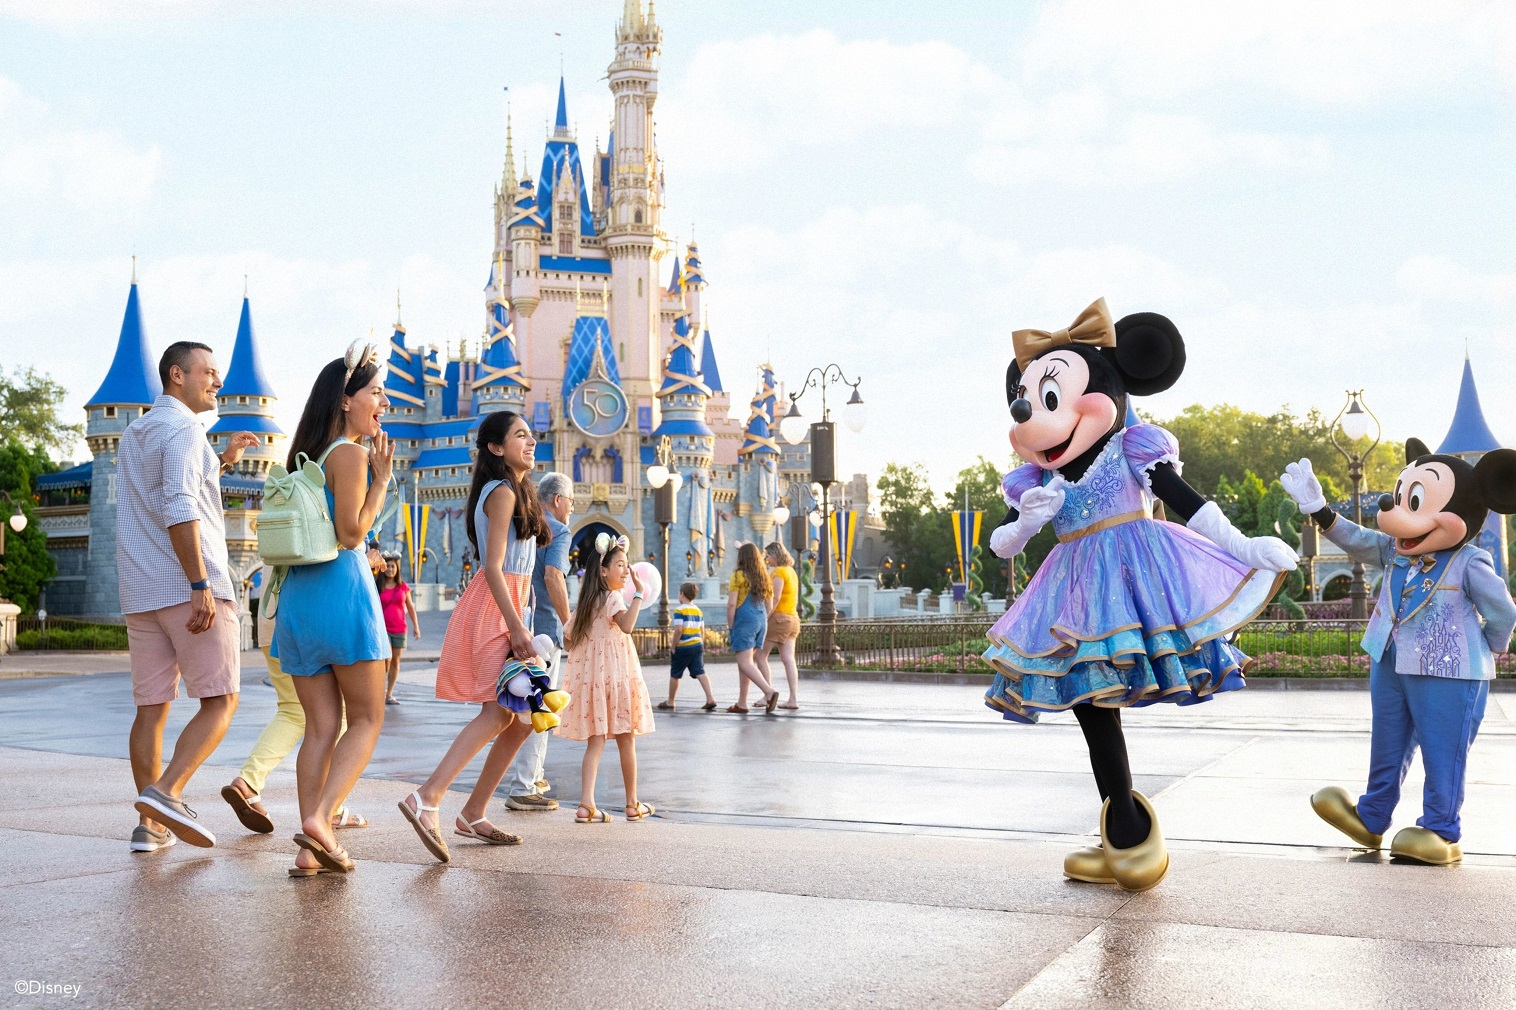 . Visit Orlando's Most Magical Gathering Contest will reunite one winner and up to 49 friends and family with an experience of a lifetime in Orlando and at Walt Disney World Resort.